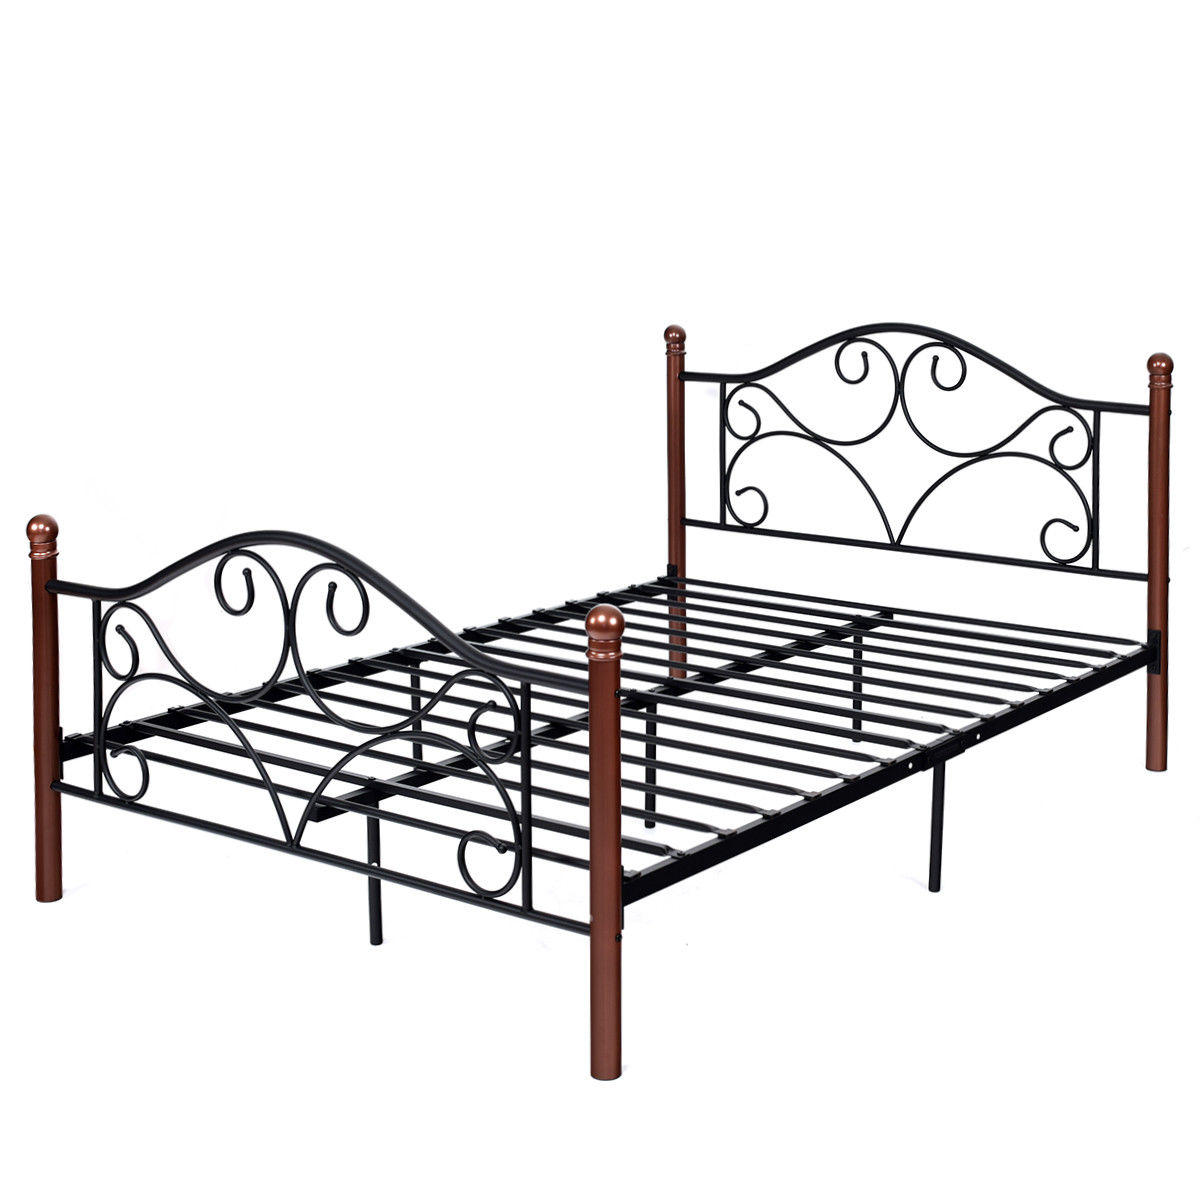 Costway Full Size Steel Bed Frame Platform Stable Metal